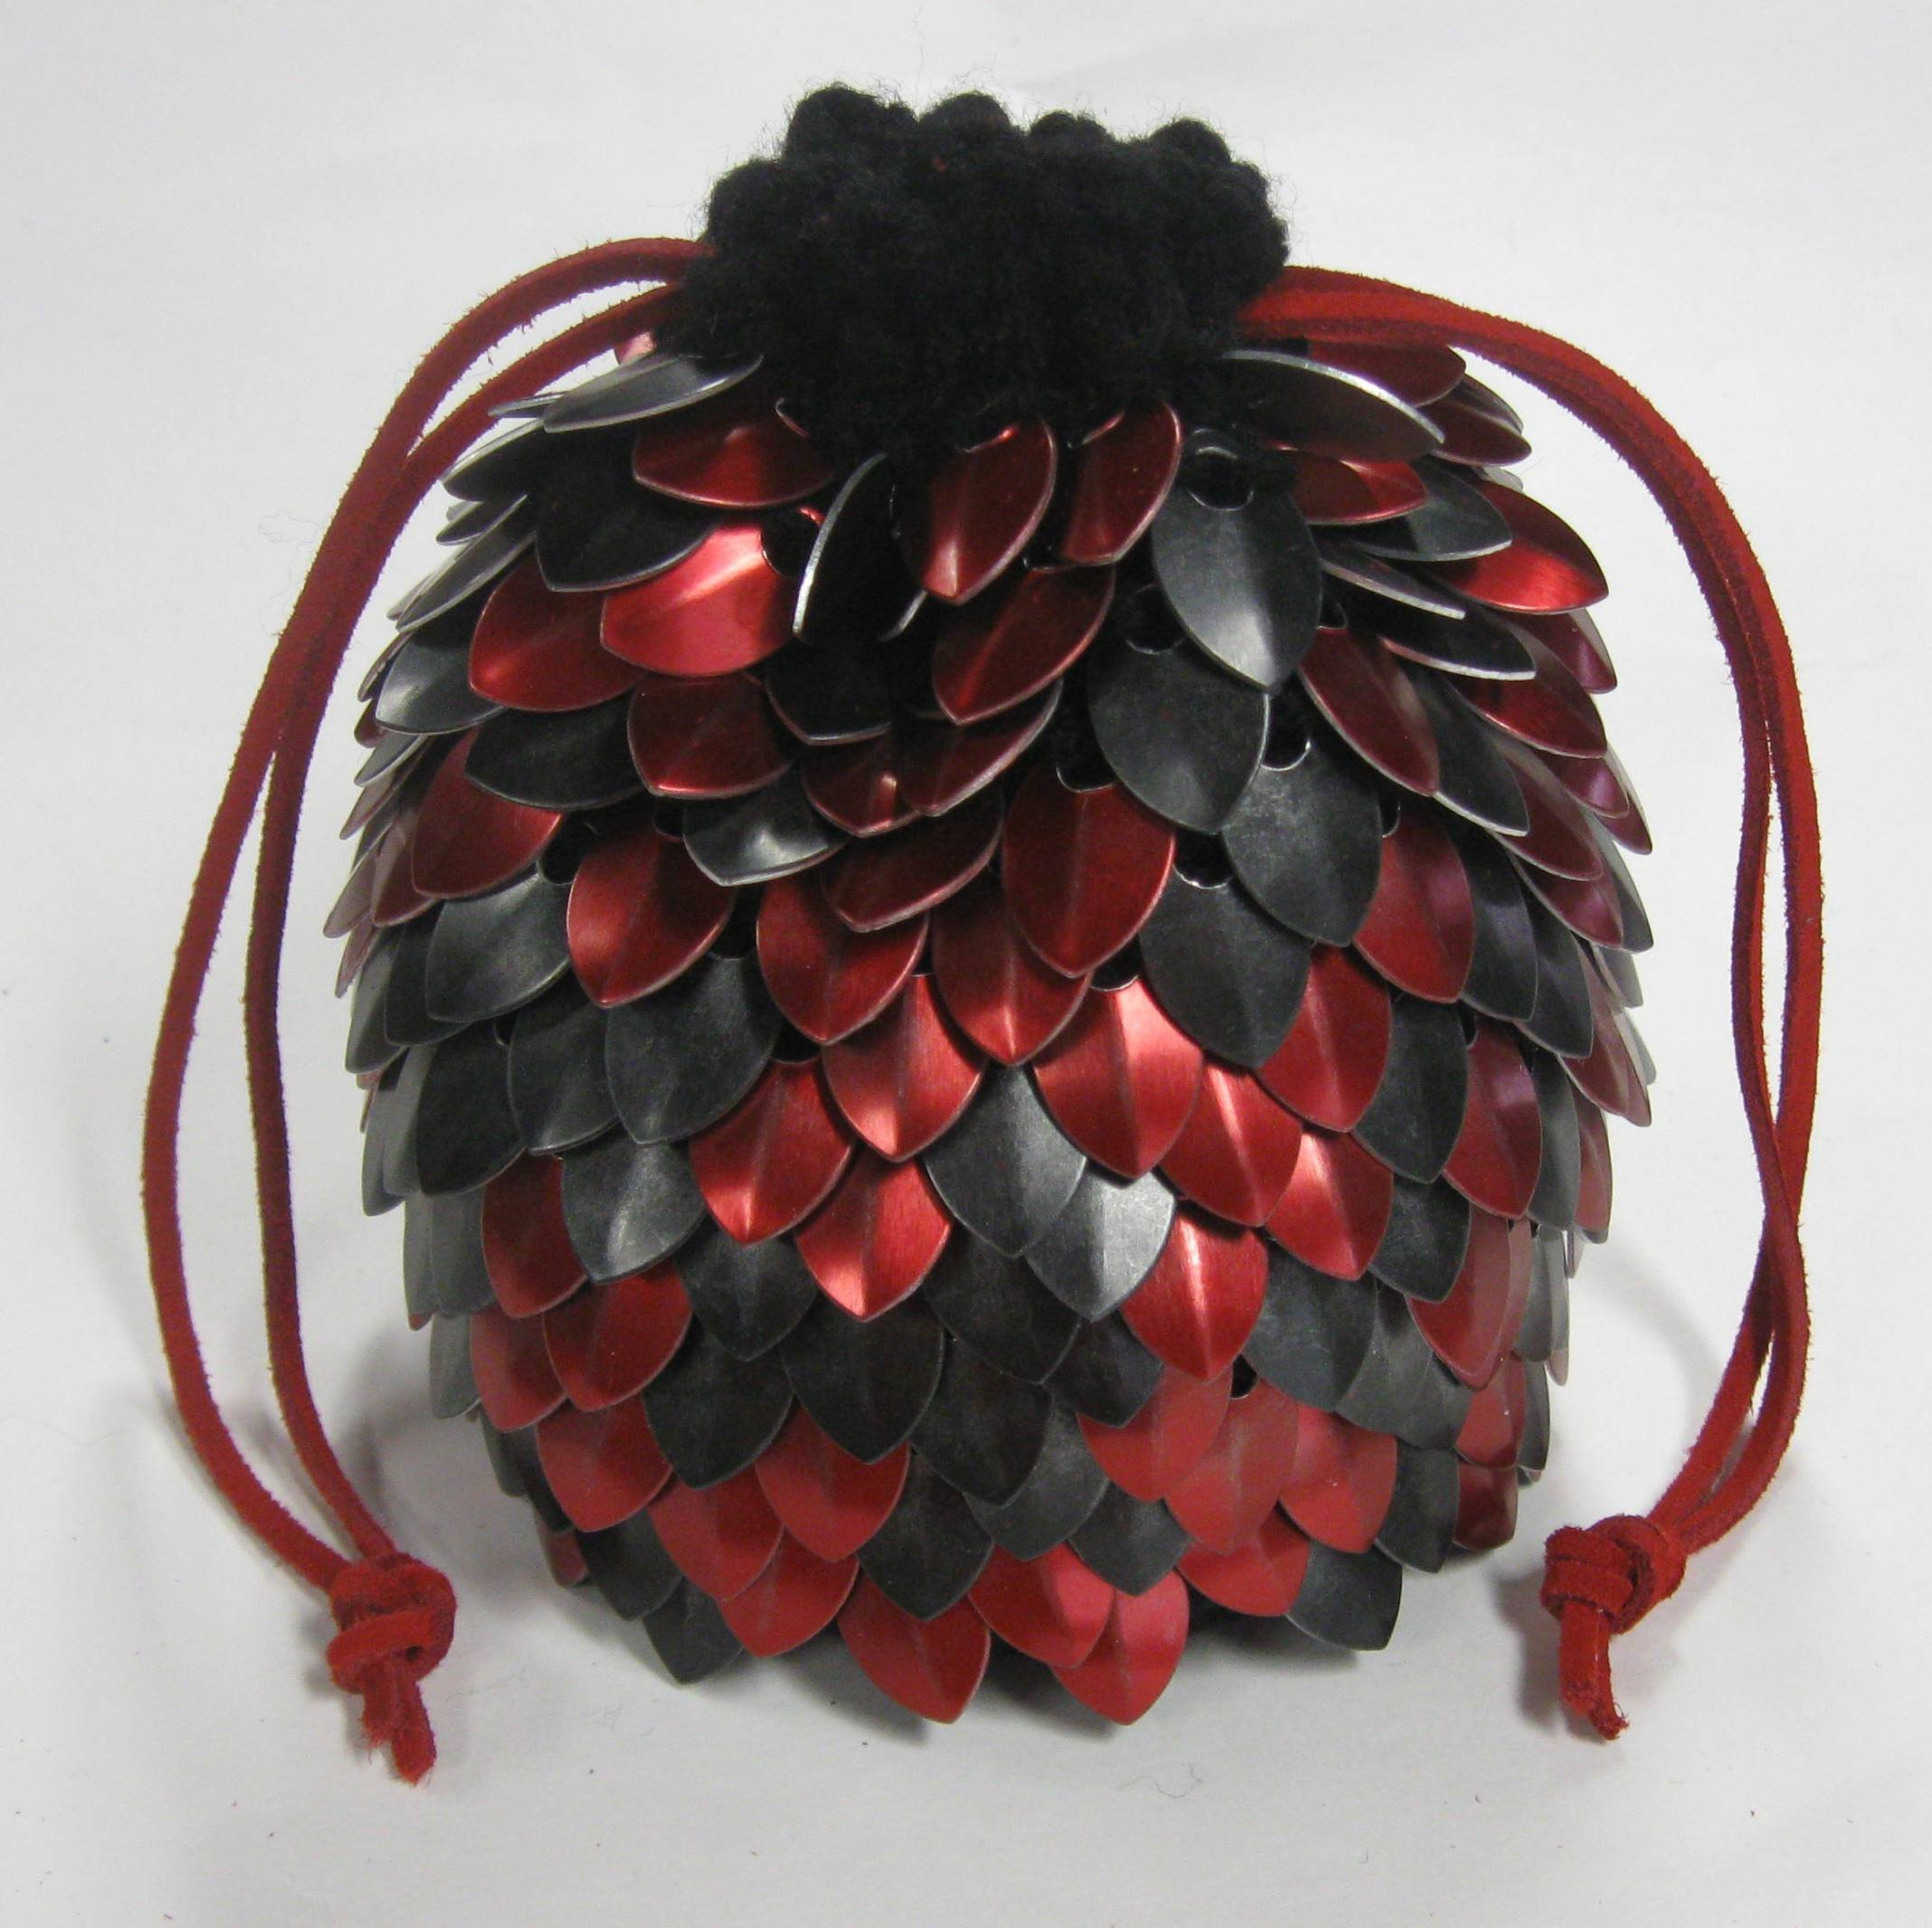 Knitted Dragonhide Dice Bag of Holding - Red and Black Random Extra Large holds over 100 dice by Crystal's Idyll